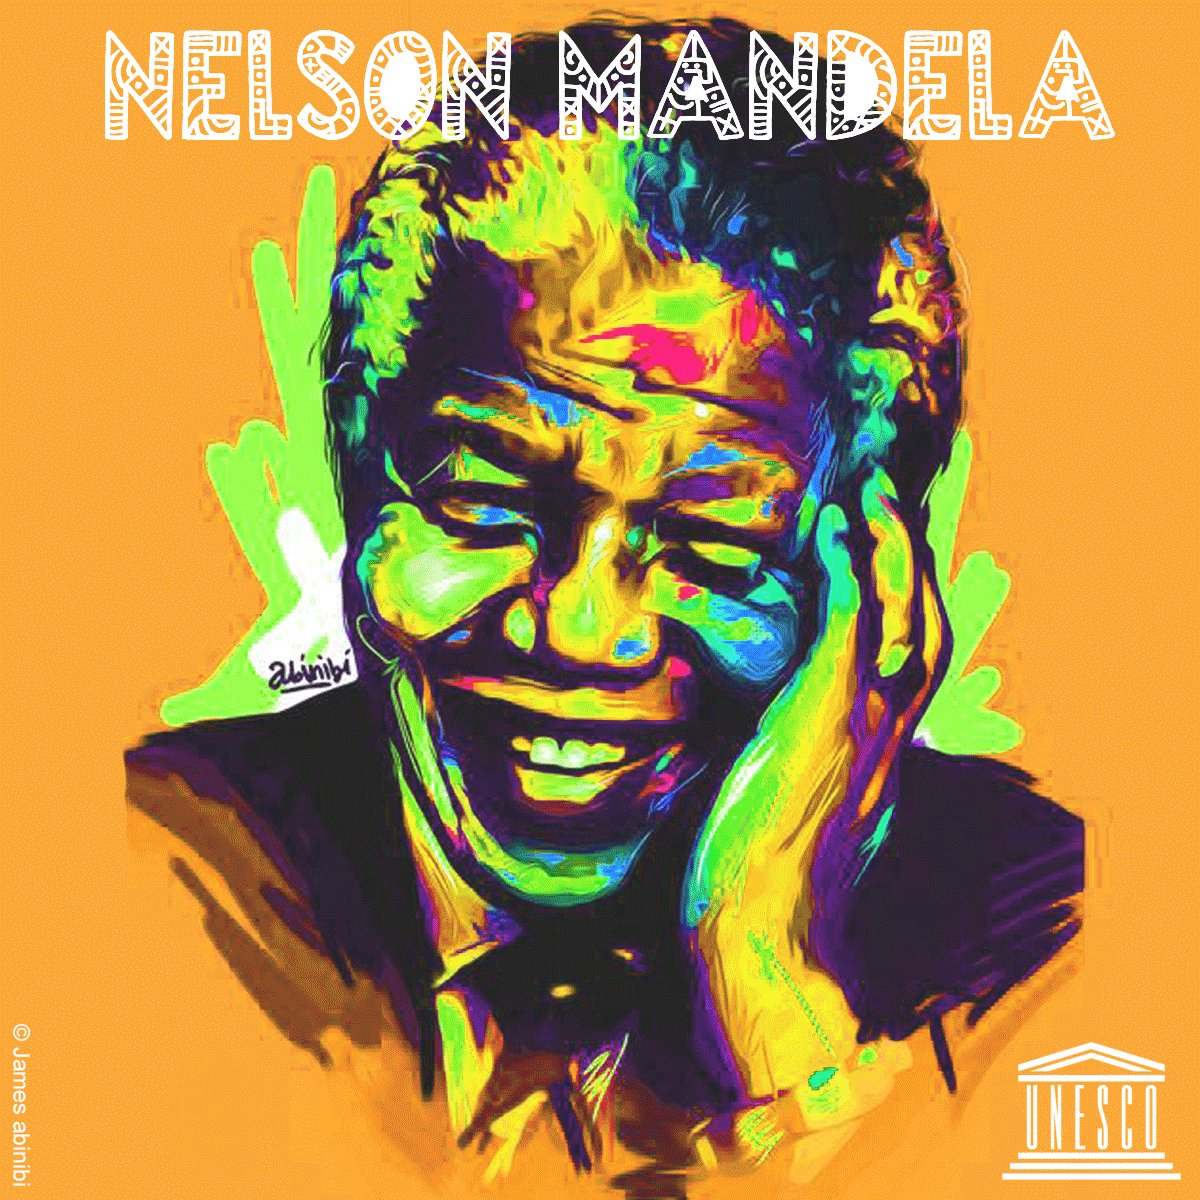 Always believe in equality Always believe in justice Always believe in freedom Always believe in peace  On #MandelaDay and every day, be inspired by #NelsonMandela to build a better world for all ✊🏿✊🏻✊🏾✊✊🏽  https://on.unesco.org/2zKws4y